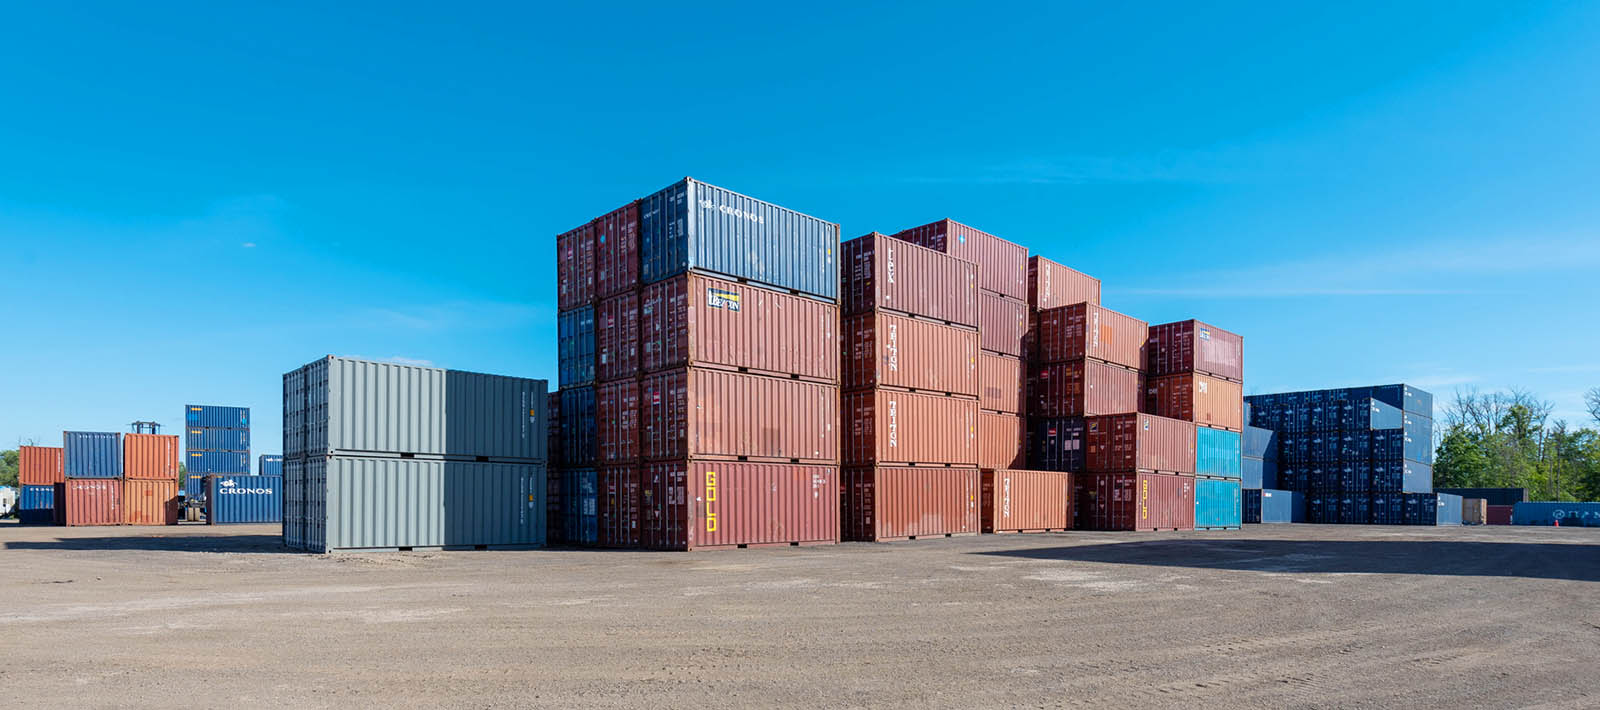 4 reasons why renting a shipping container could be a better option than buying one